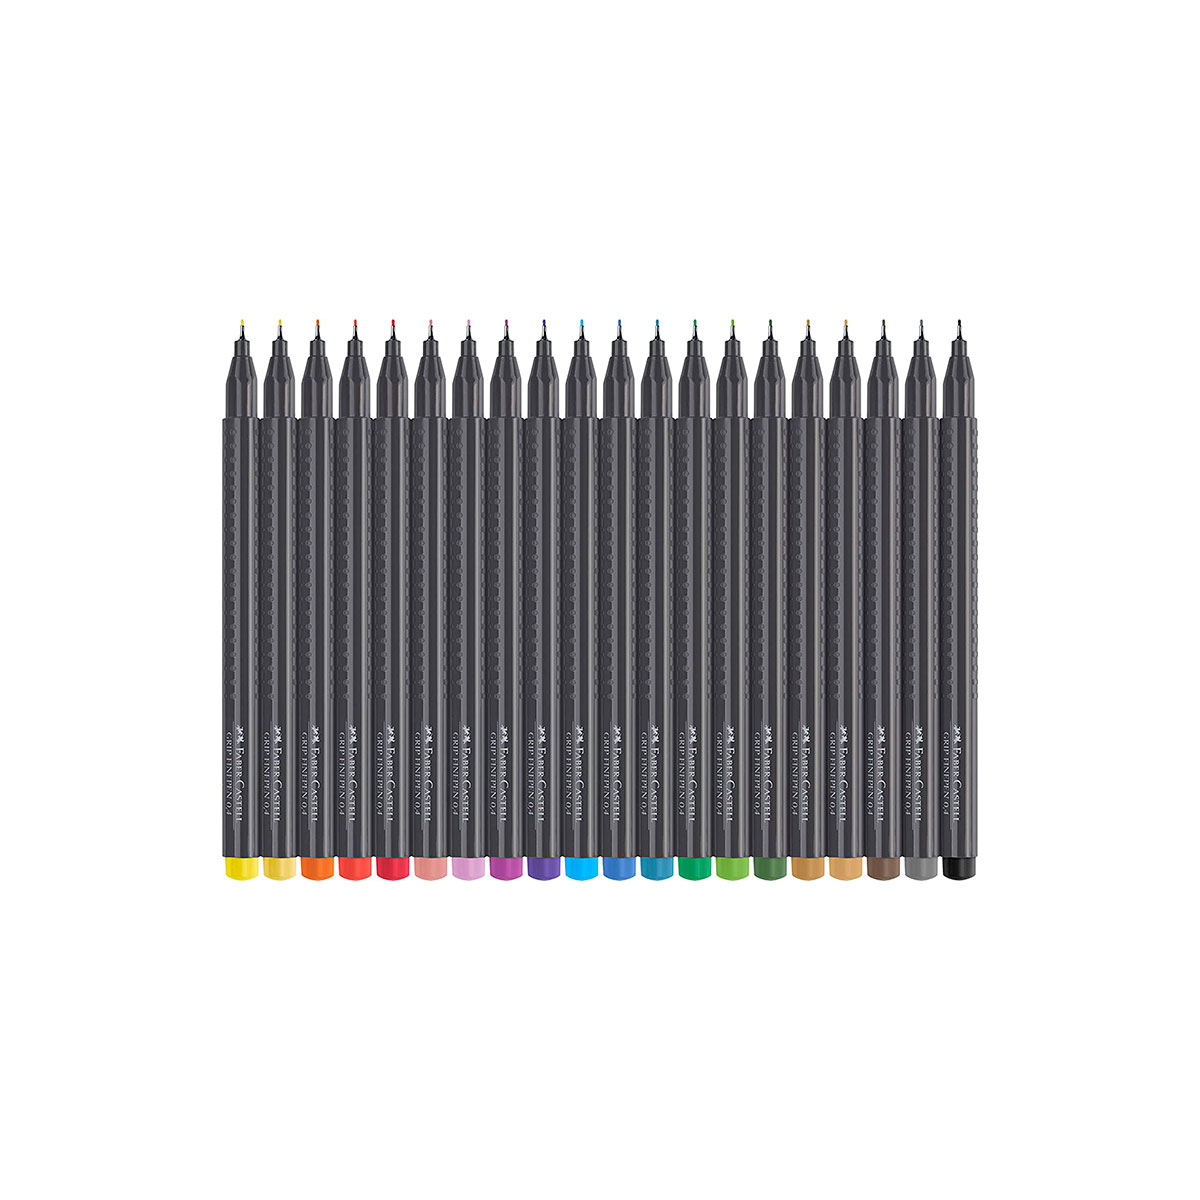 151607 FABER-CASTELL                                                | MICROFIBRA GRIP FINEPEN 0.4MM COLORES VARIOS